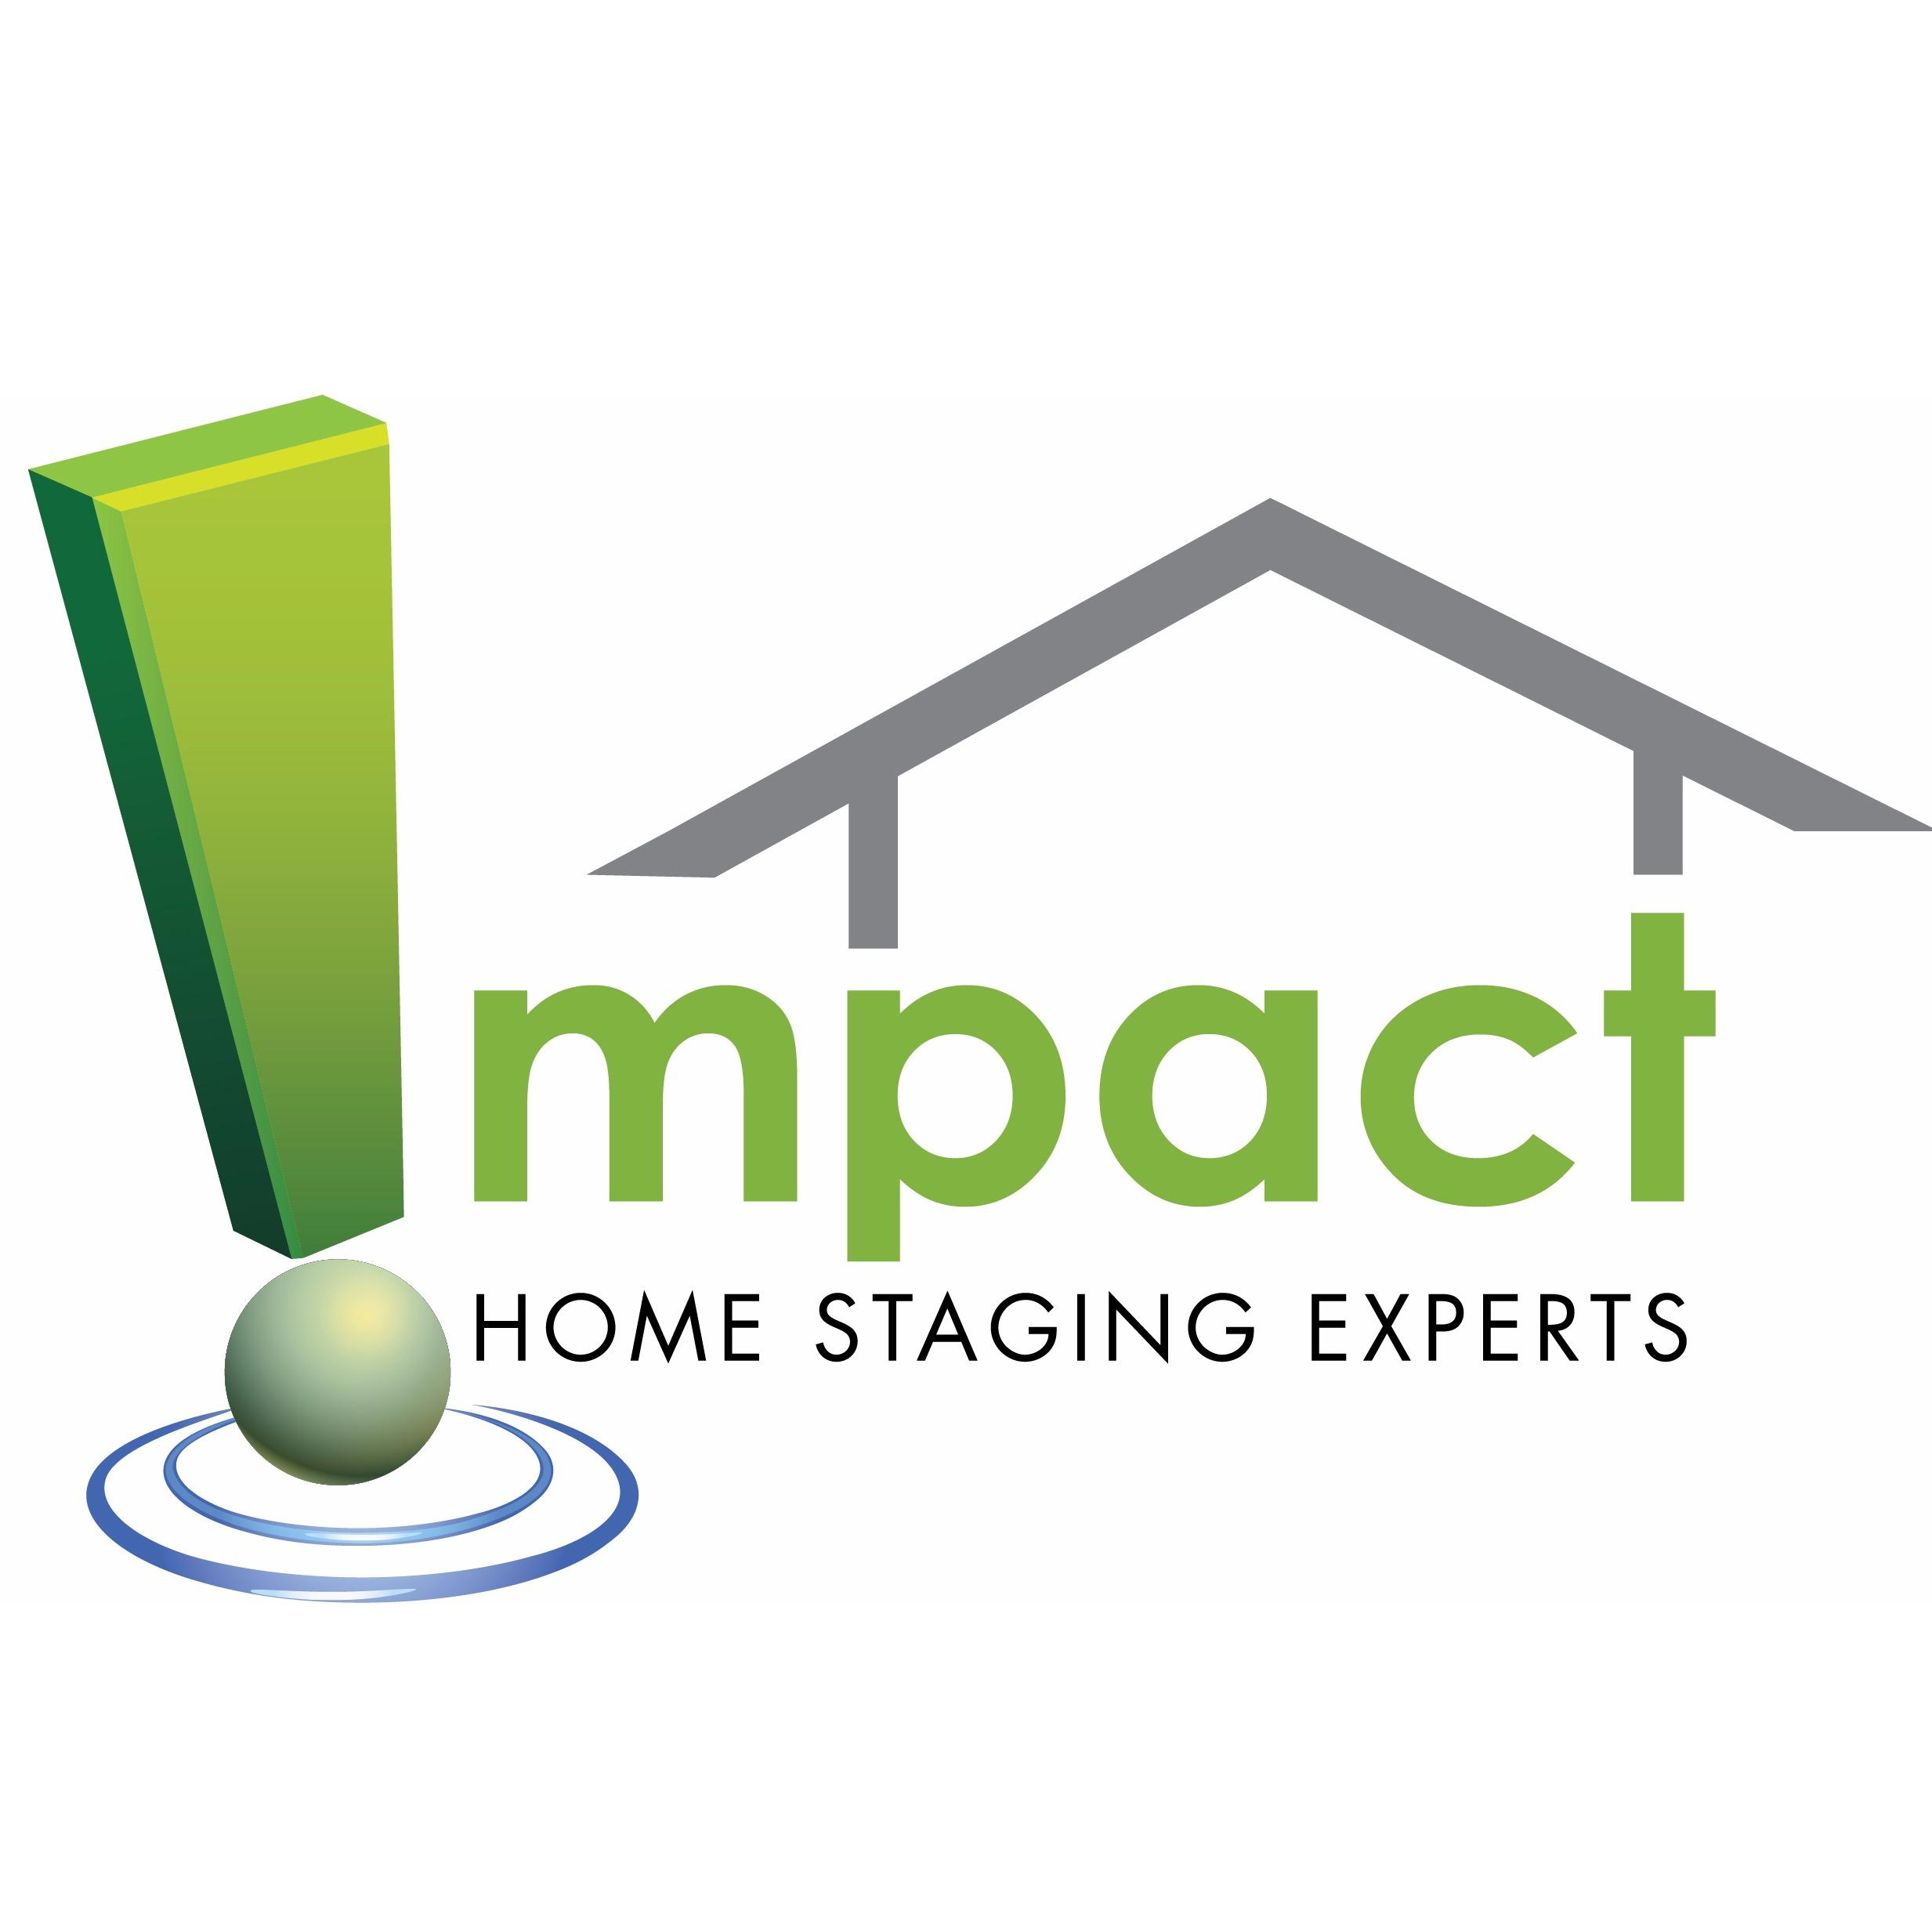 impact home staging experts in troy mi 48083. Black Bedroom Furniture Sets. Home Design Ideas